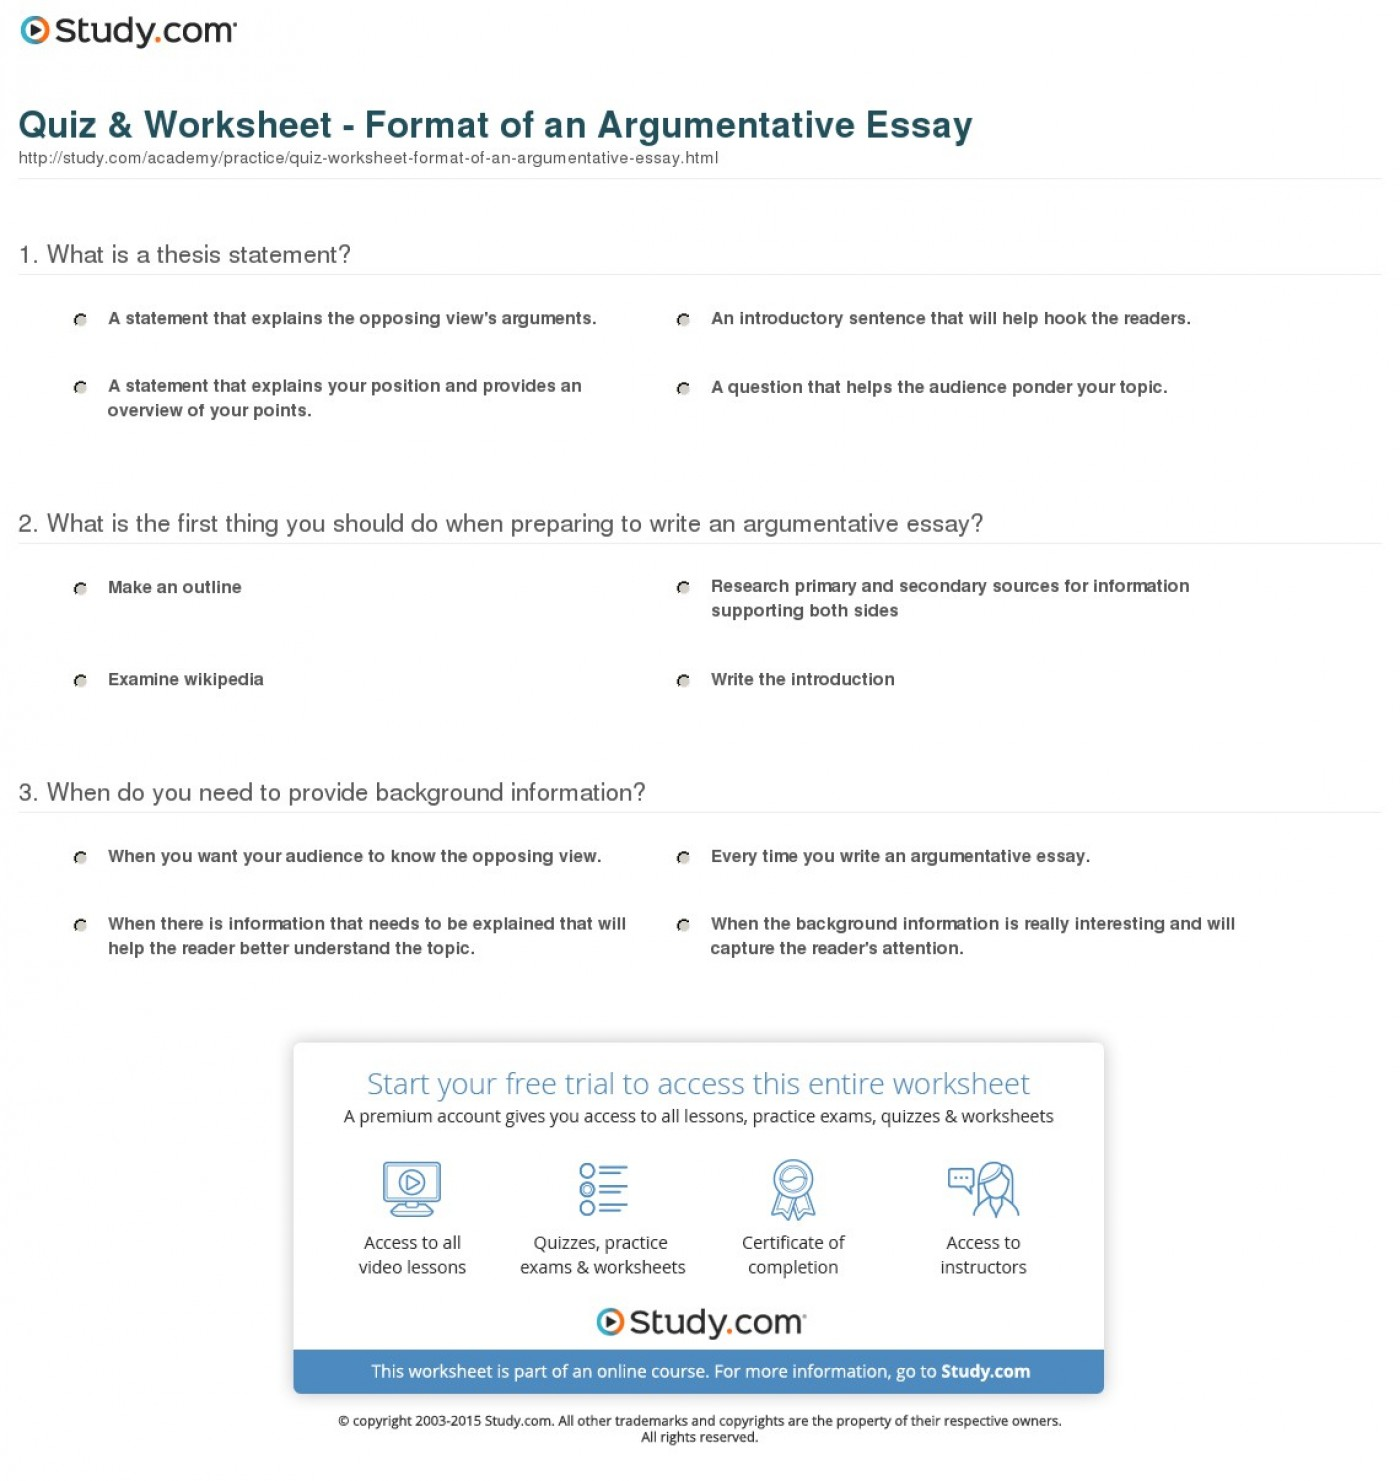 015 Argumentative Essay Format Quiz Worksheet Of An Best Template Outline Sample Pdf 1400